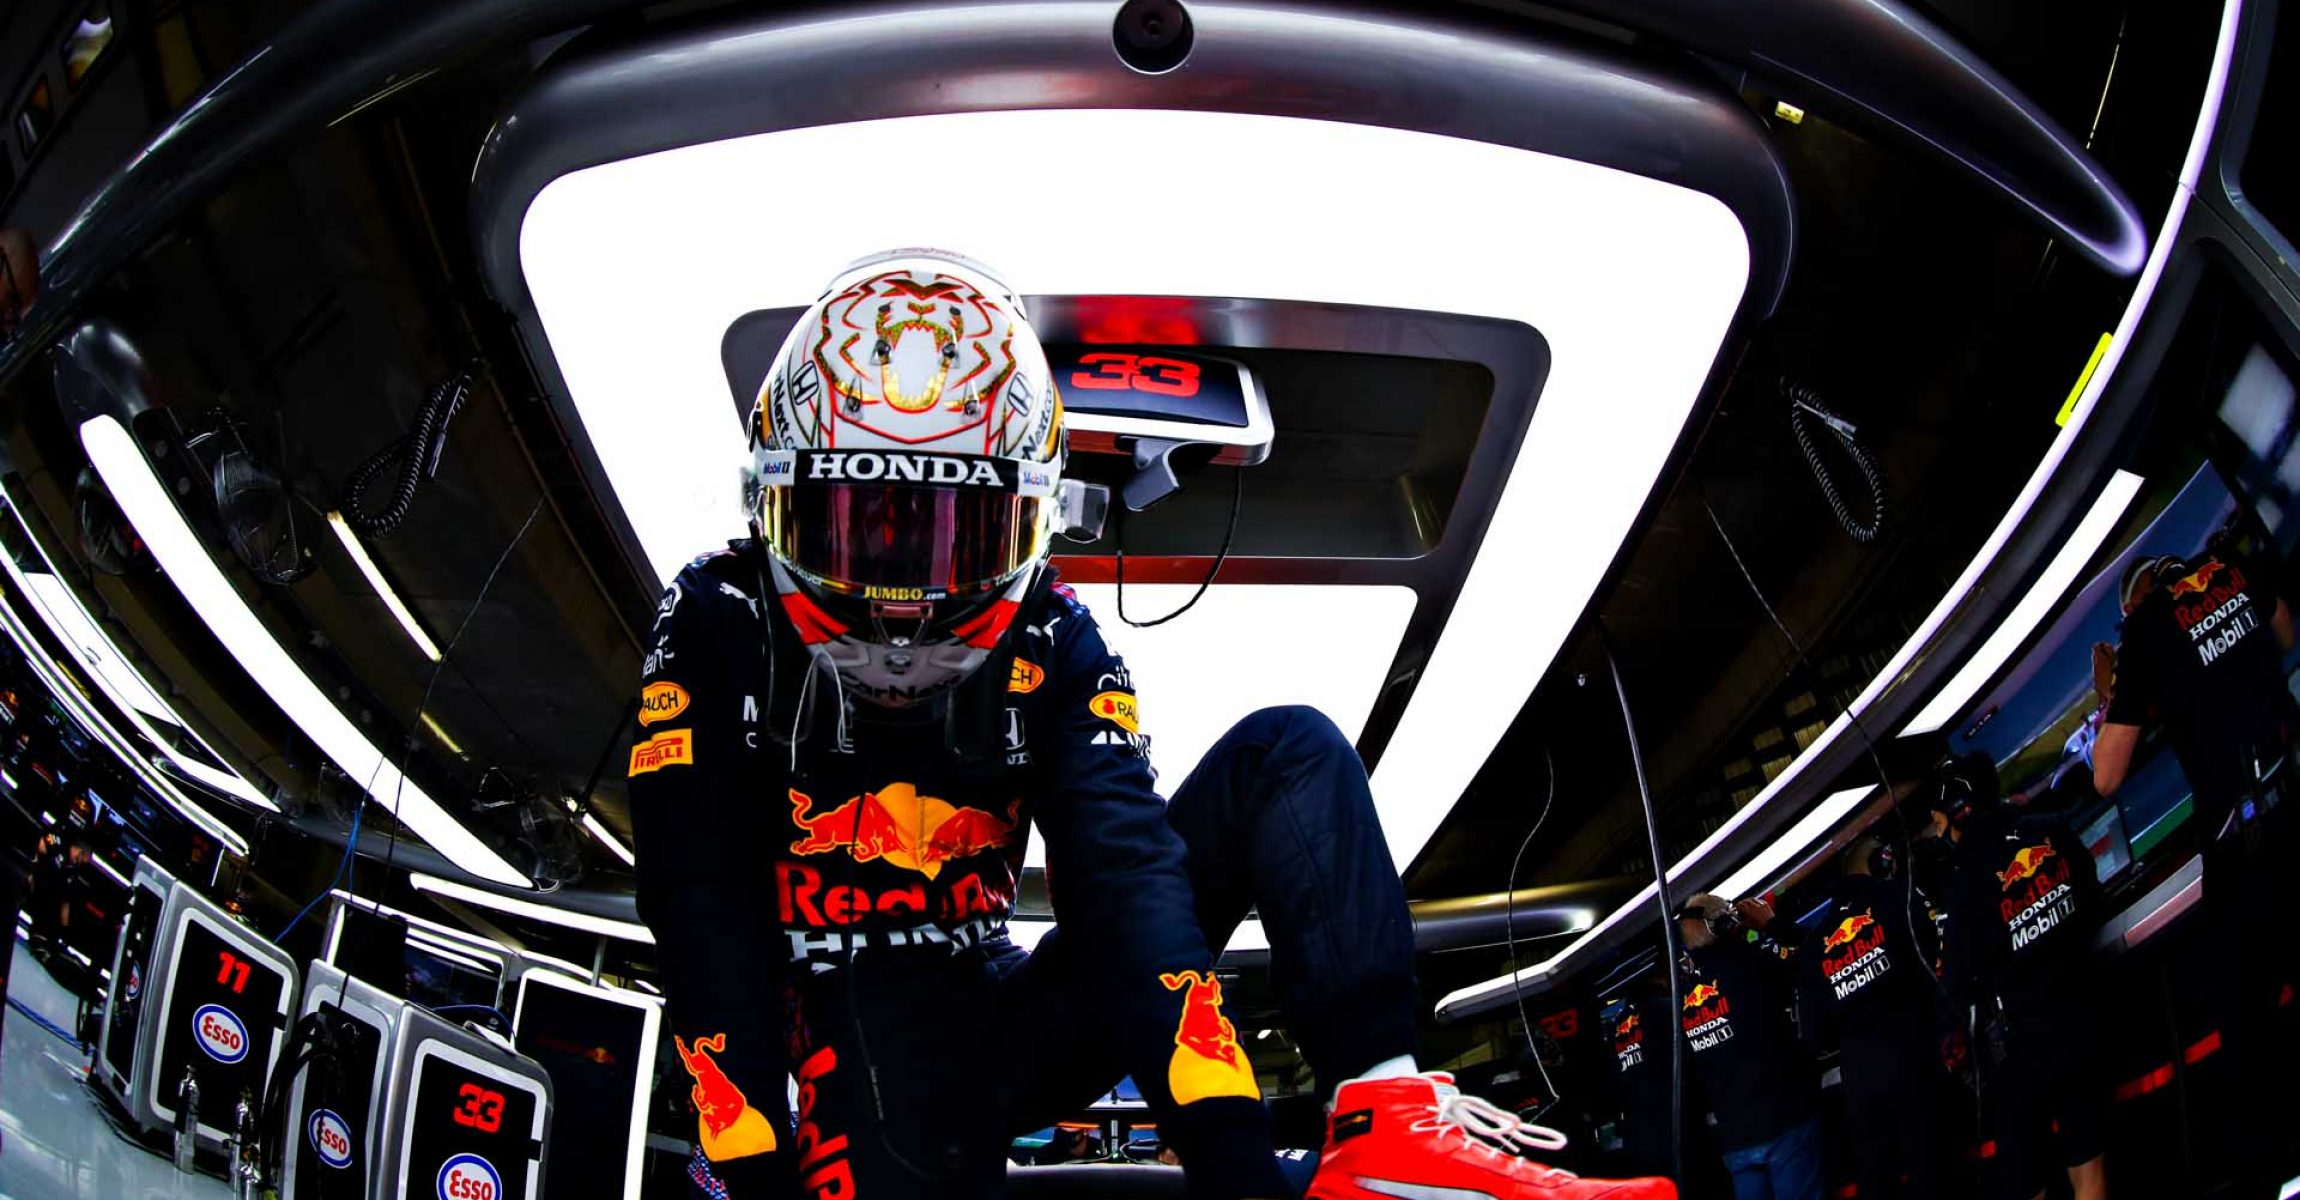 PORTIMAO, PORTUGAL - MAY 01: Max Verstappen of Netherlands and Red Bull Racing prepares to drive in the garage during final practice for the F1 Grand Prix of Portugal at Autodromo Internacional Do Algarve on May 01, 2021 in Portimao, Portugal. (Photo by Mark Thompson/Getty Images)